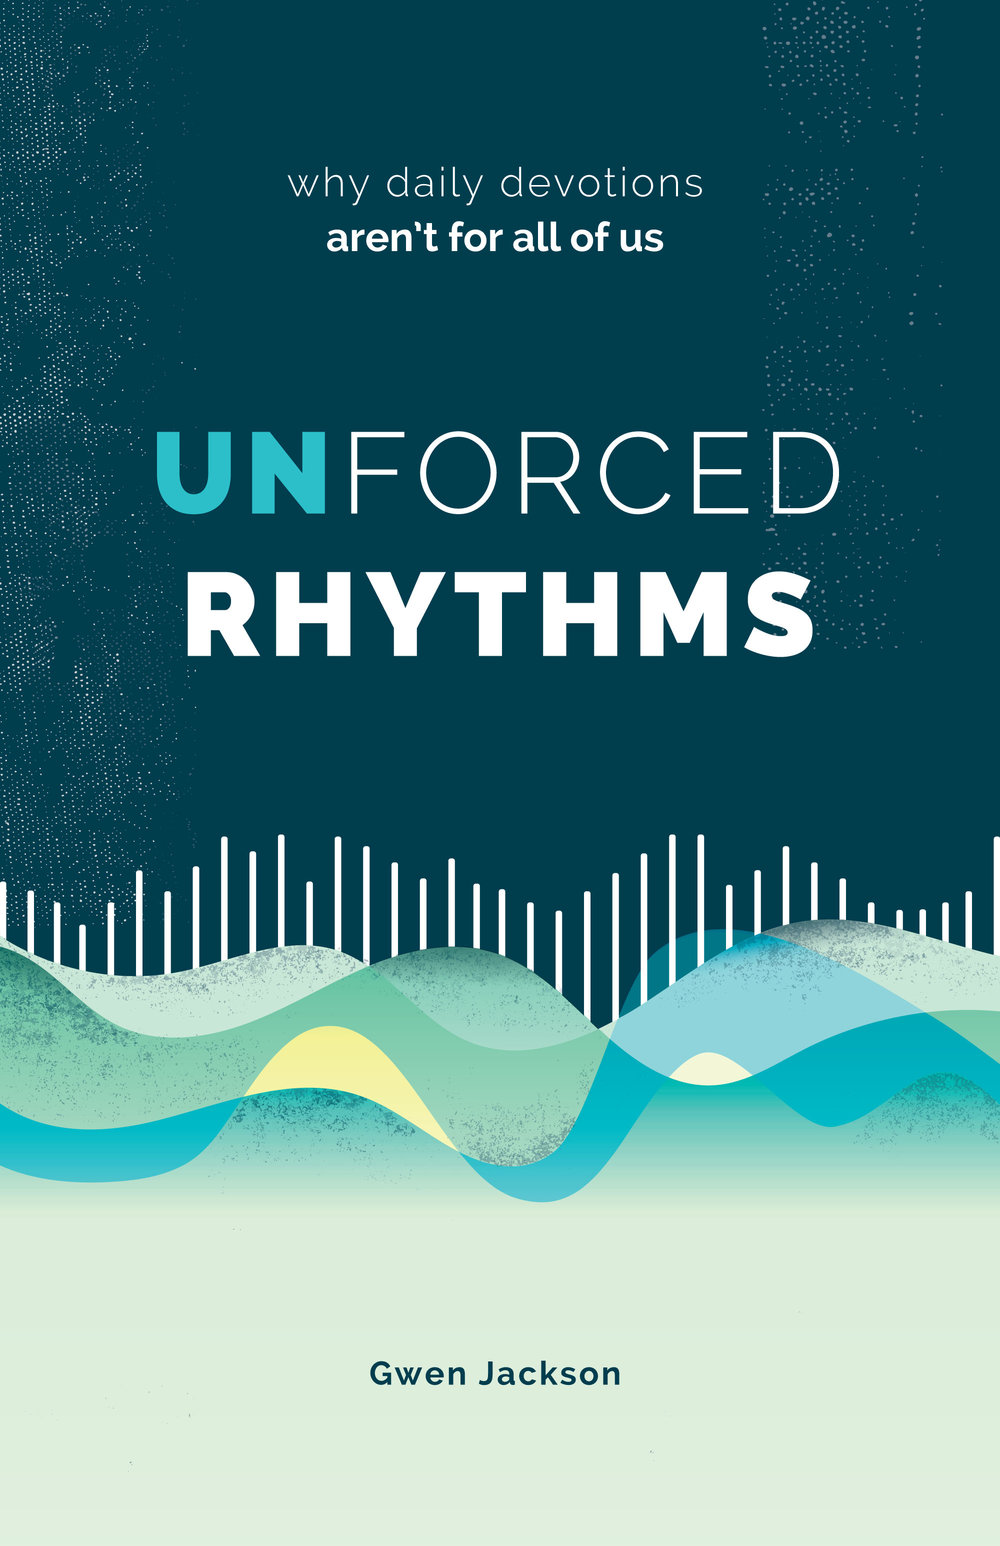 Unforced-Rhythms-Book-Cover-flat.jpg